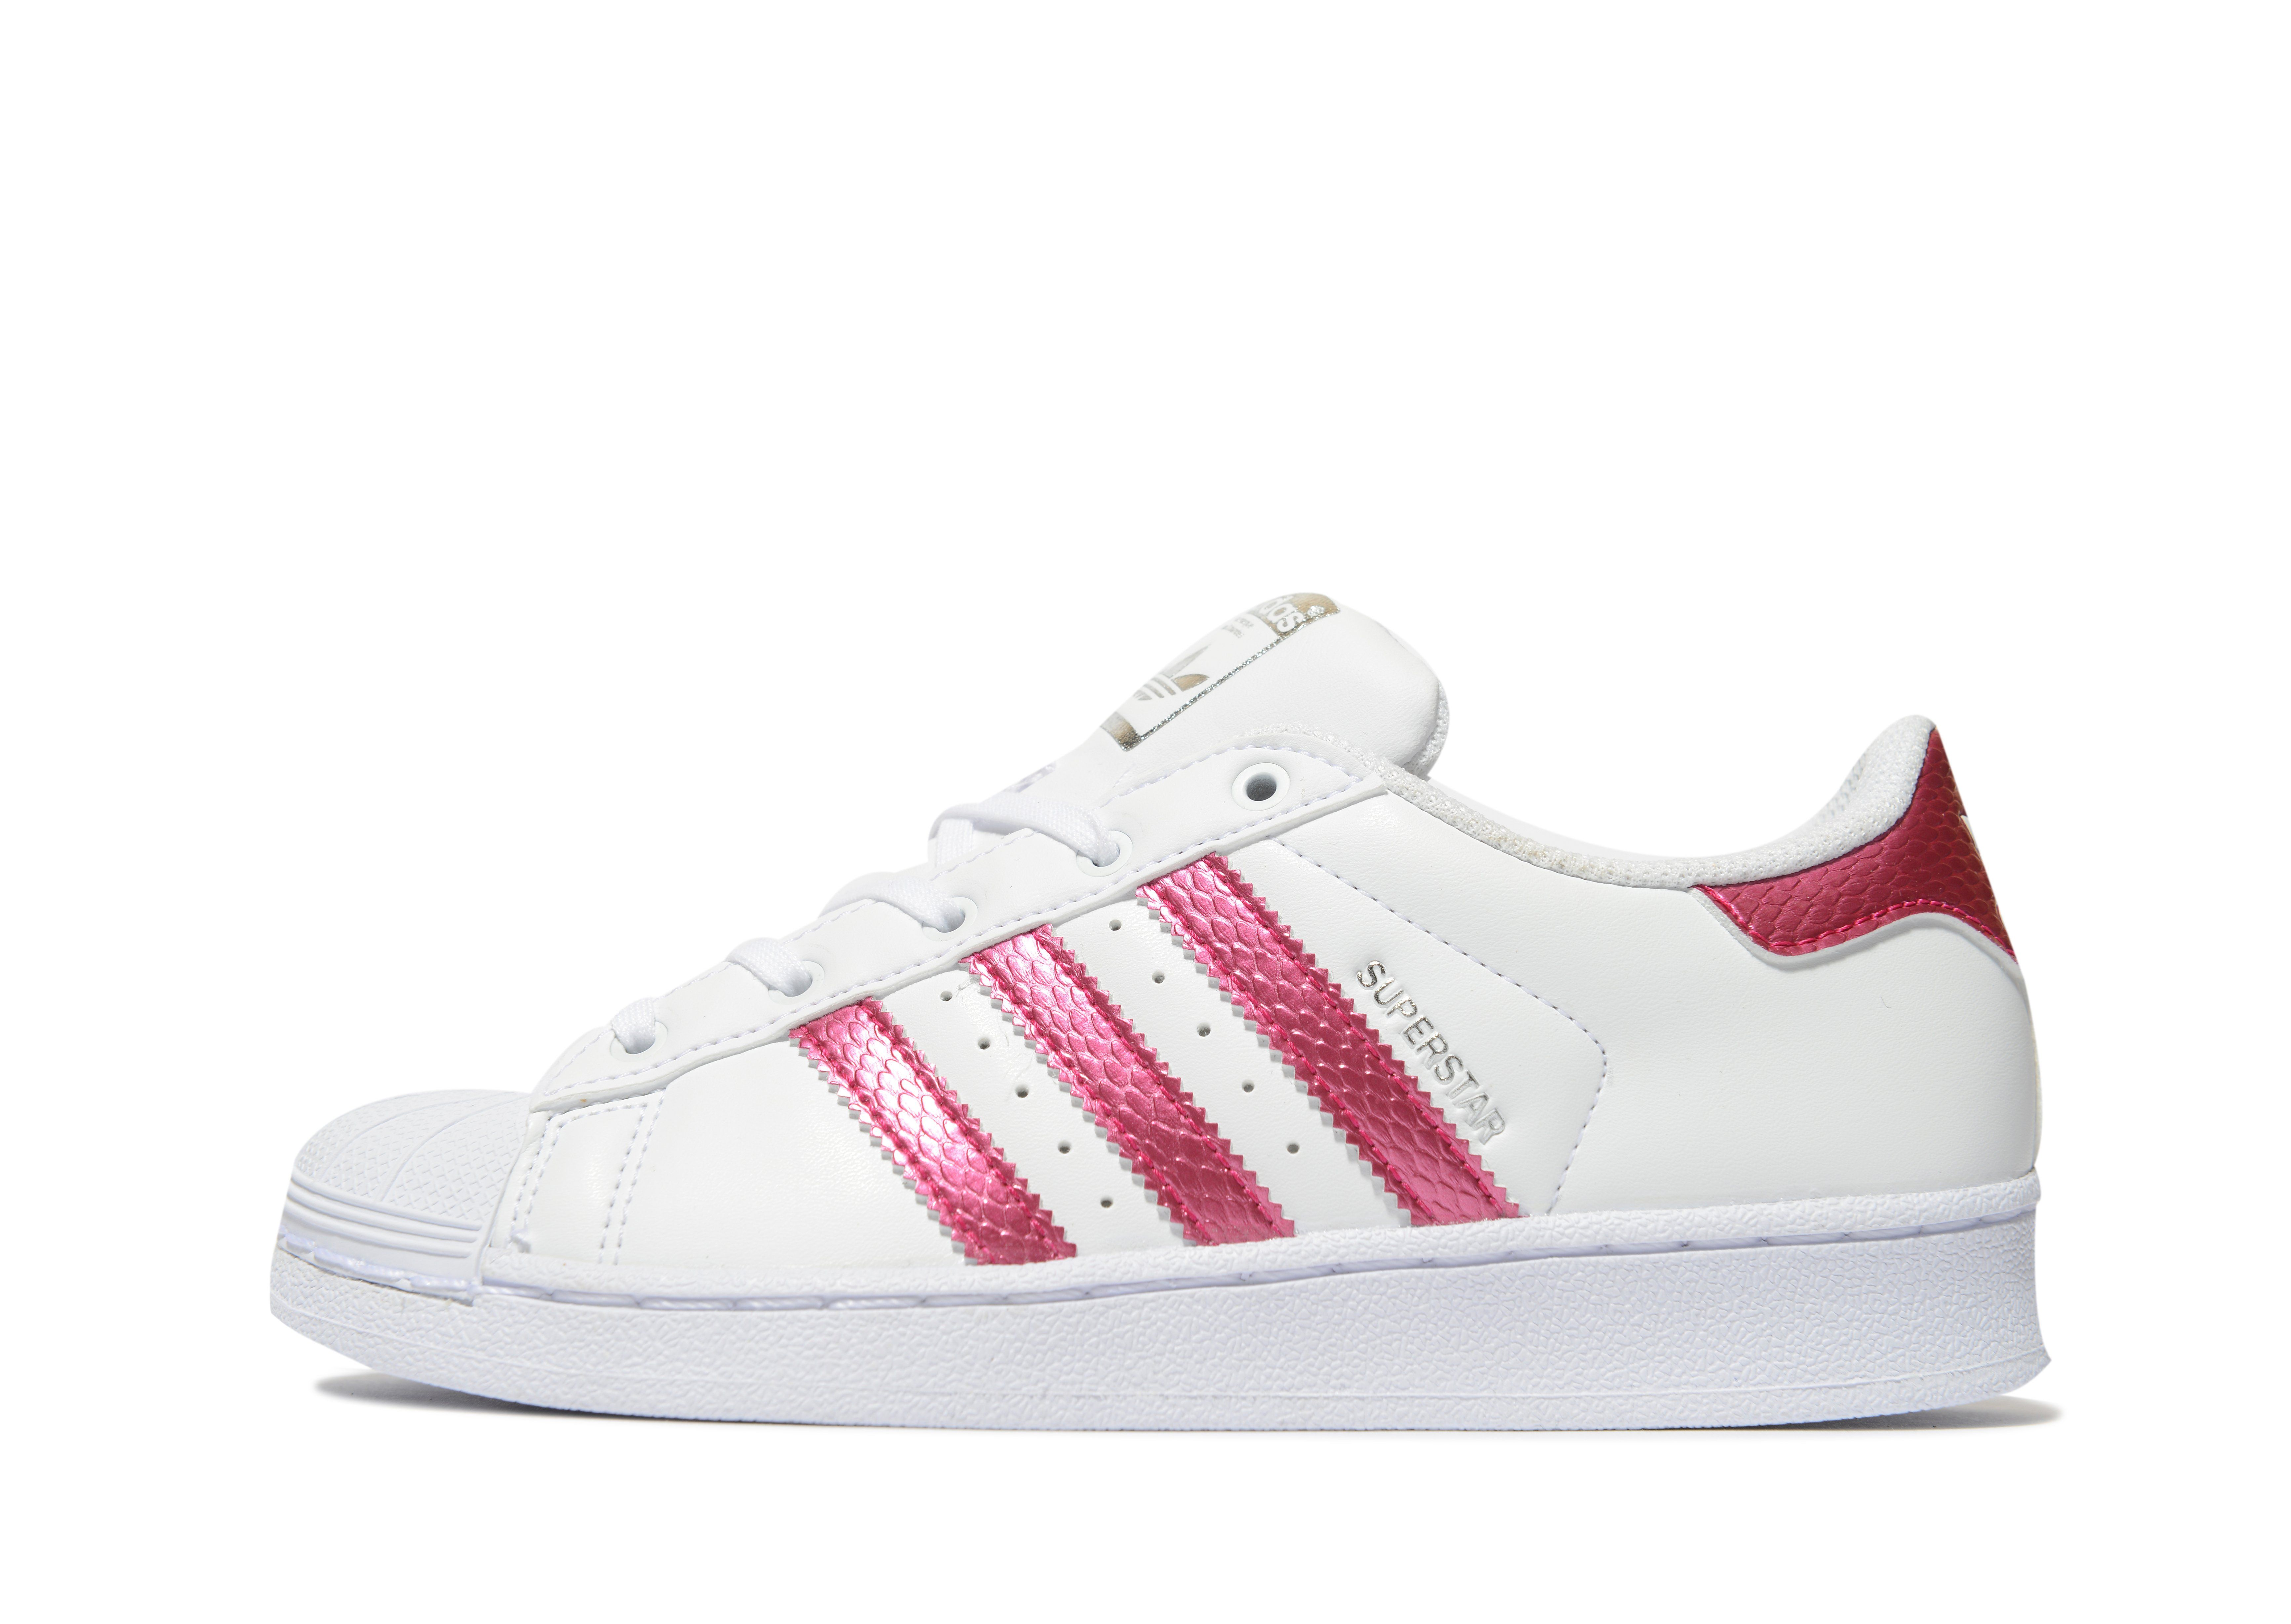 Adidas Shoes Superstar For Girls